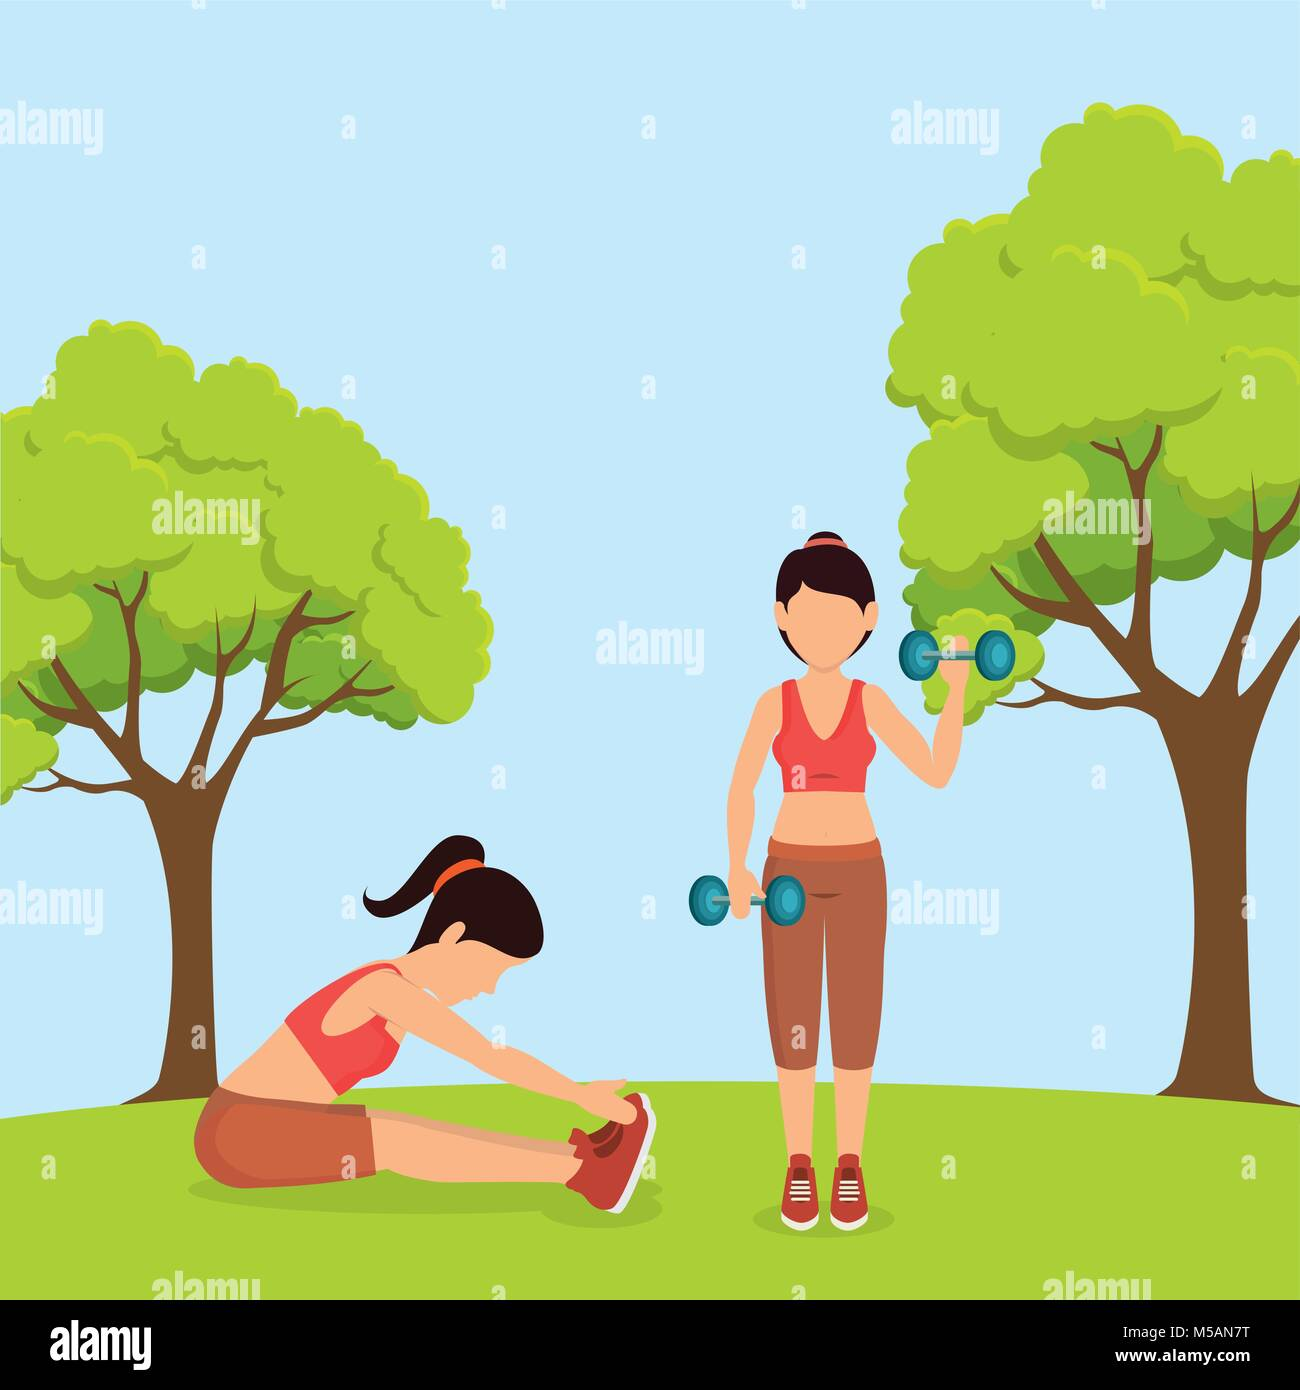 athlete female working out character - Stock Vector